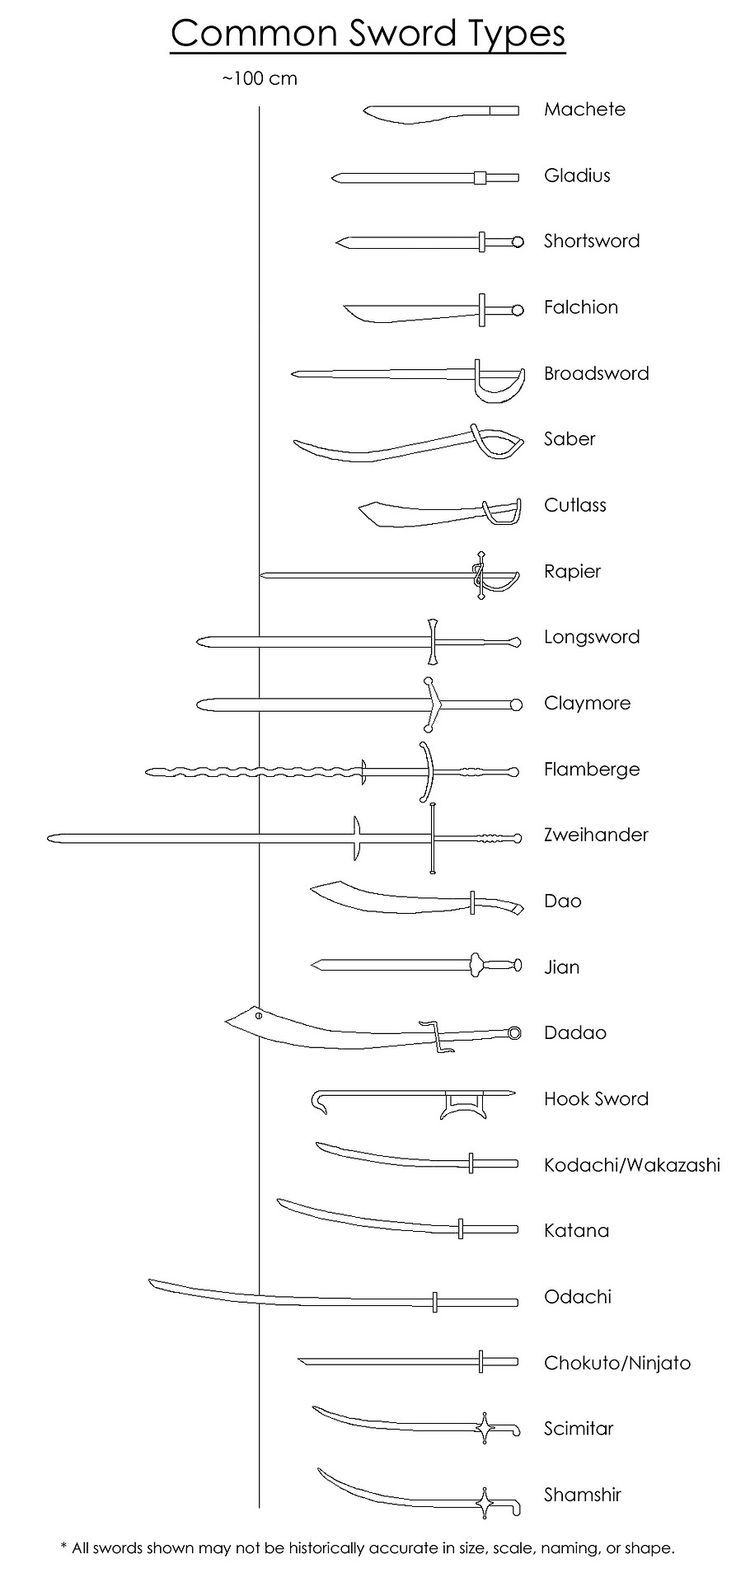 Types Of Wine Bottles Infographic: Common Sword Types- Amazing. Do You Know How Wonderfully